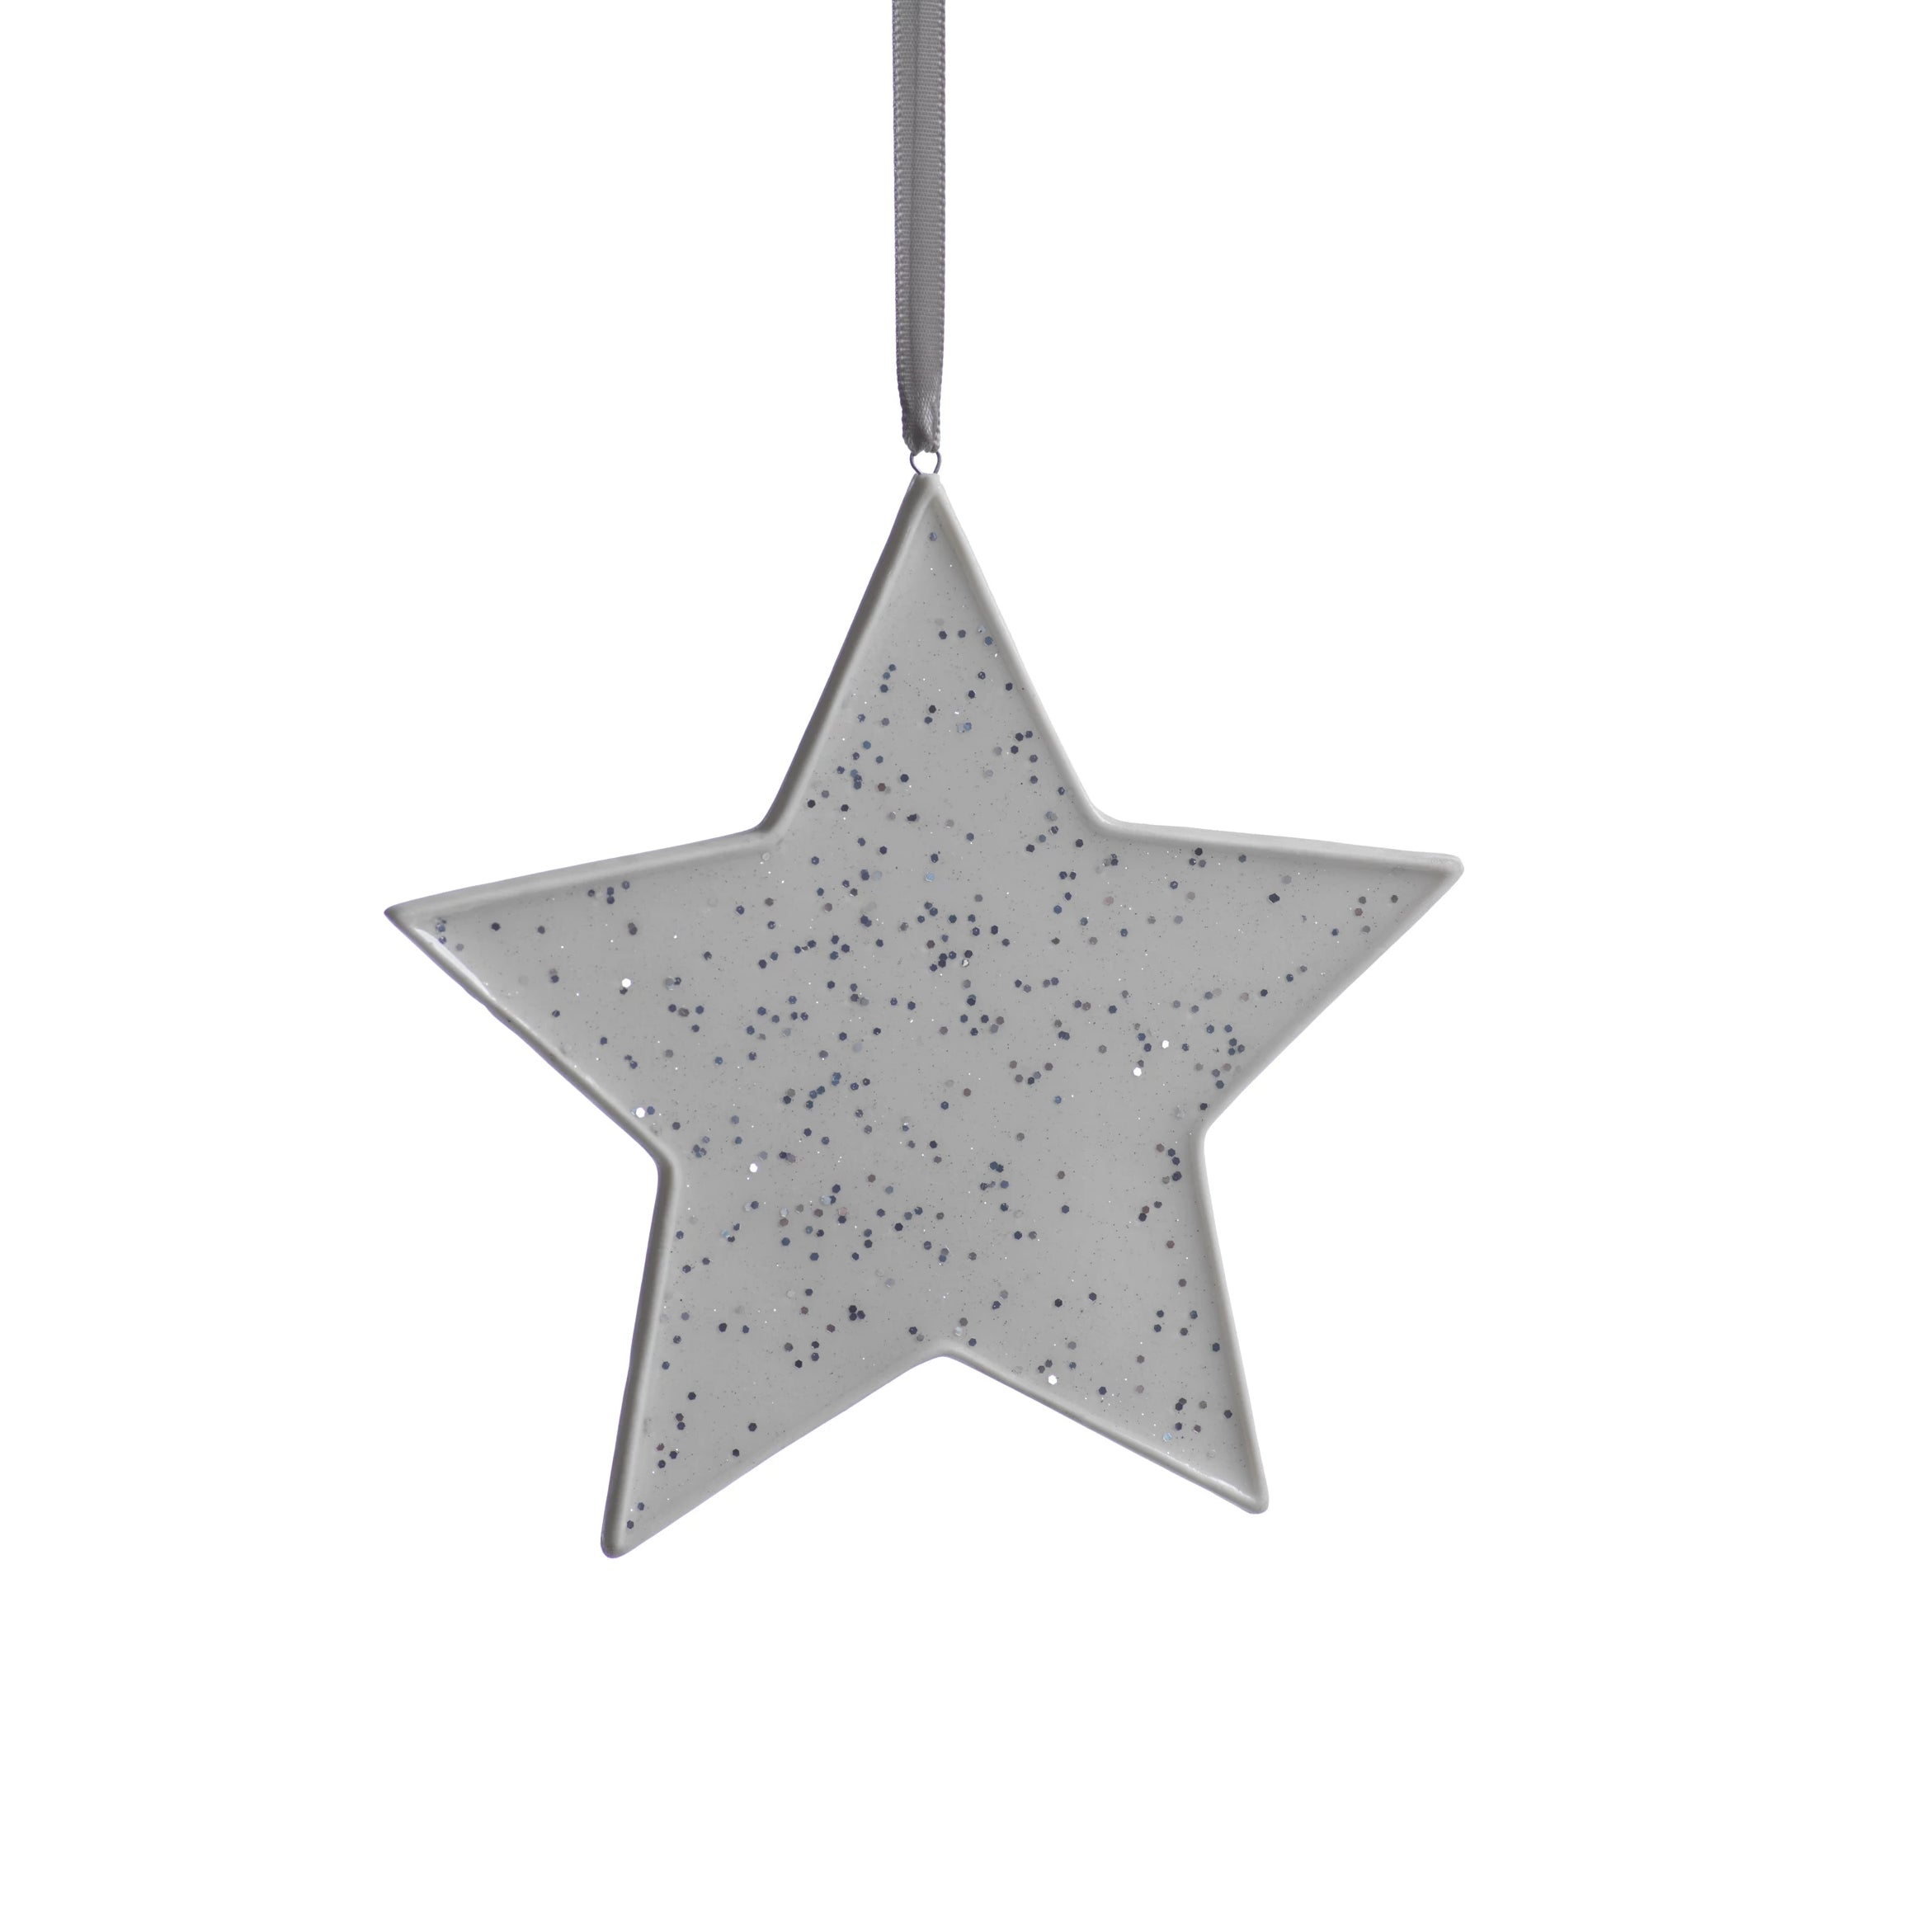 Speckled Star Ornament - Silver